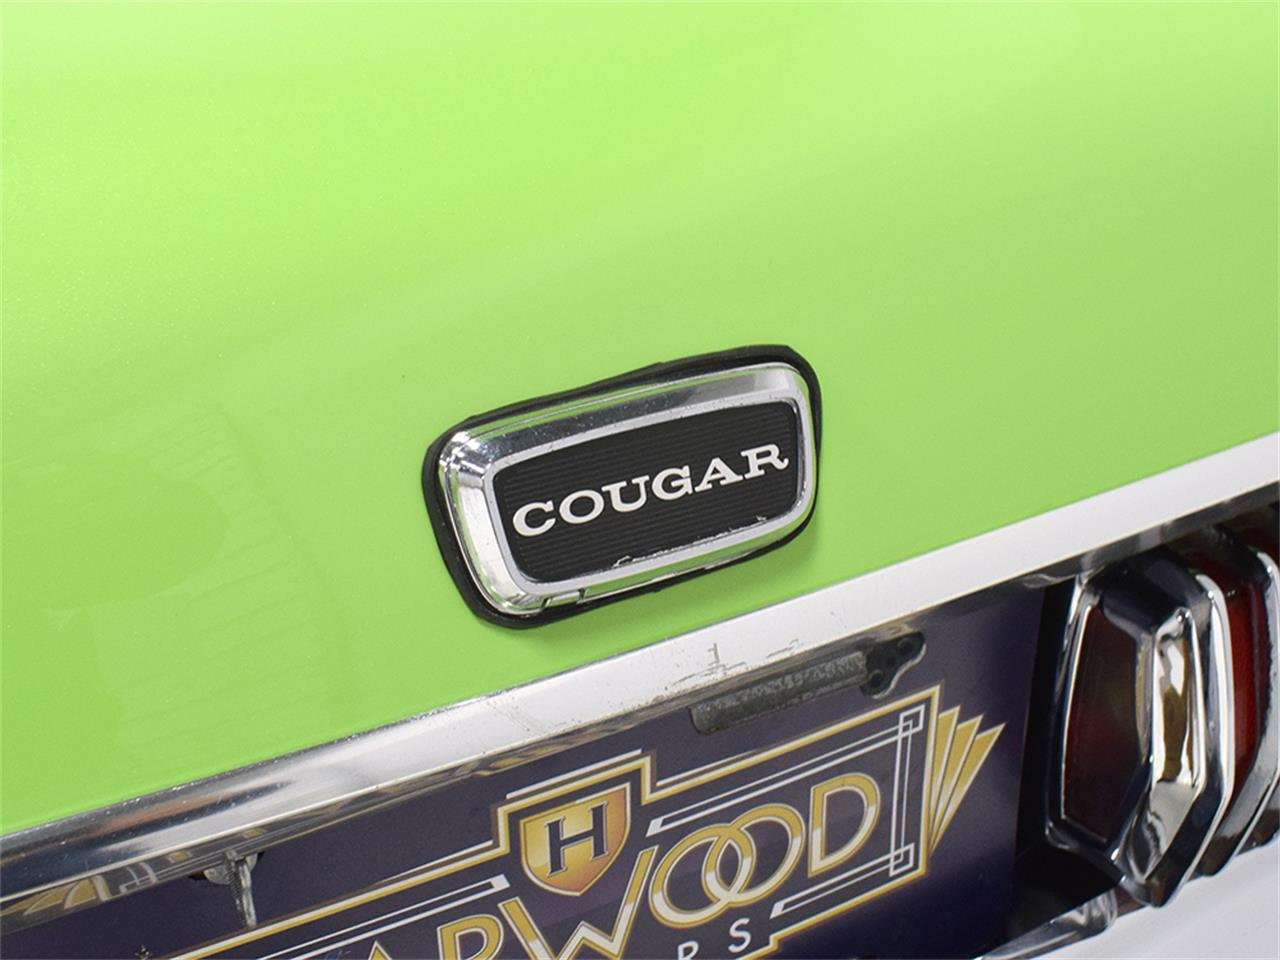 Large Picture of 1967 Cougar located in Ohio - $49,900.00 Offered by Harwood Motors, LTD. - MH5X